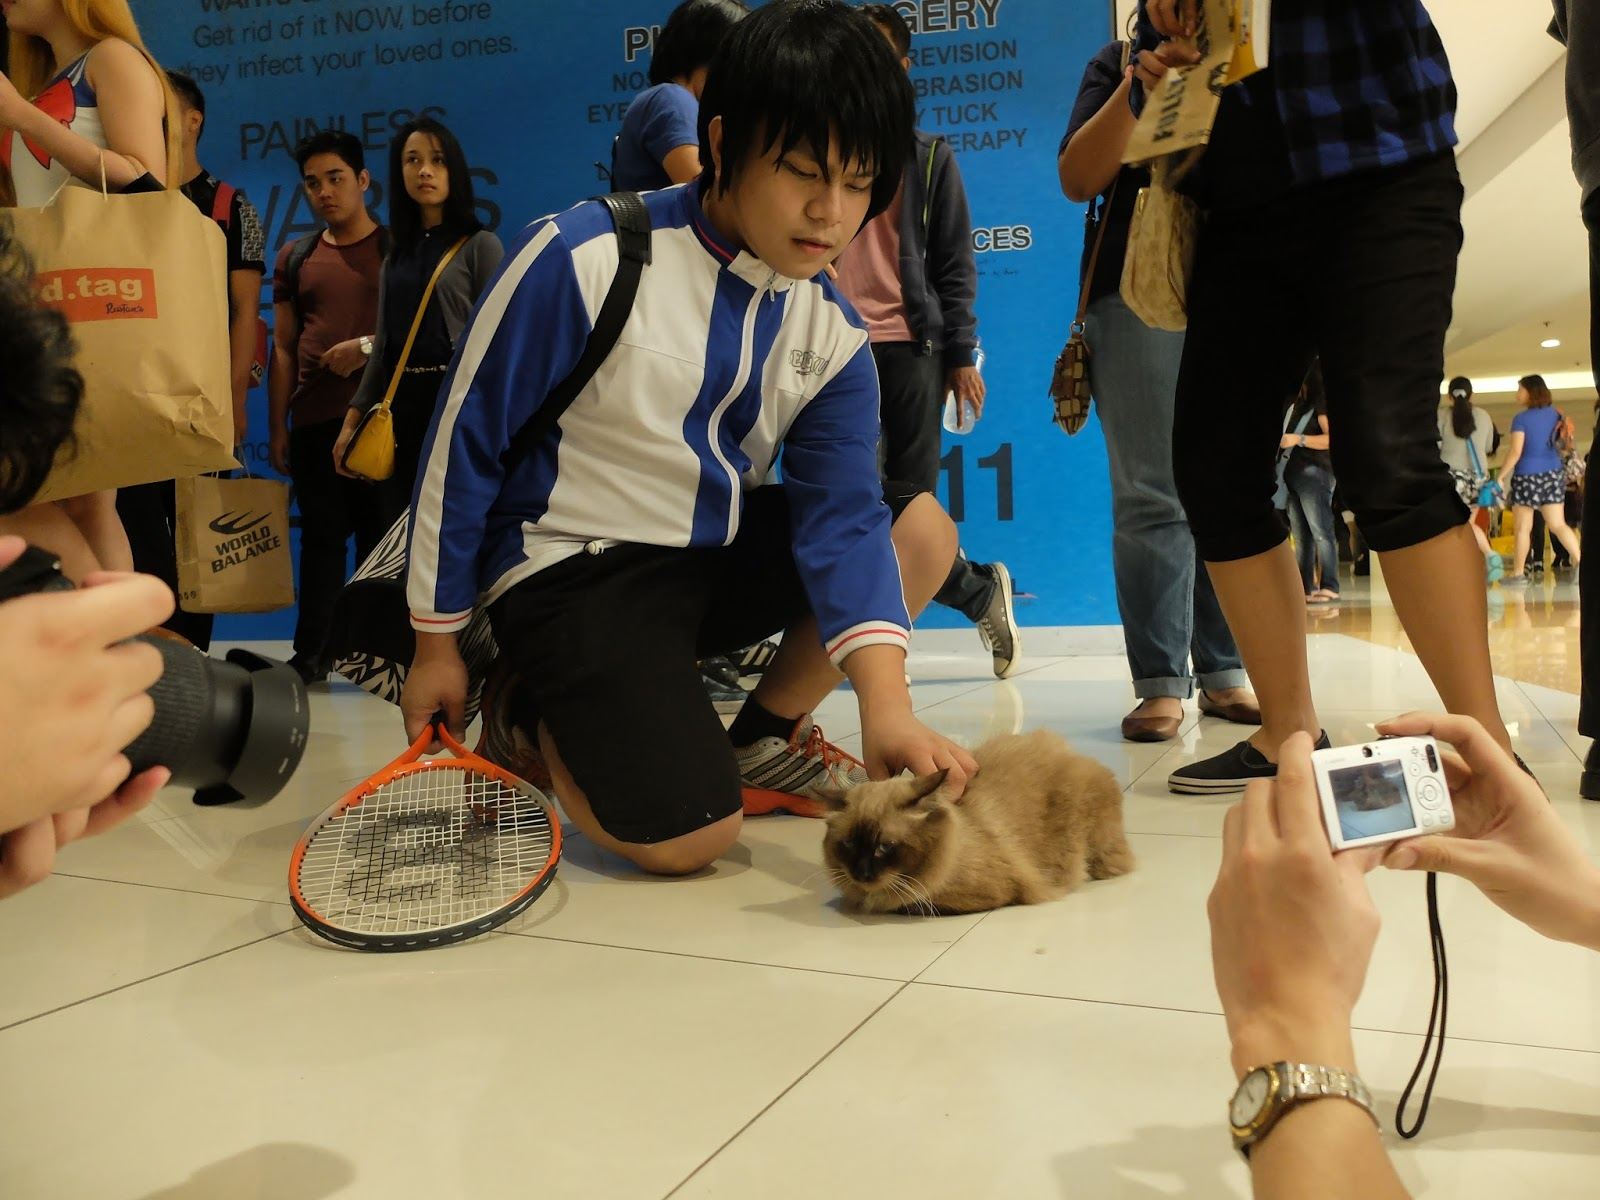 echizen.mine.nu Ryoma Echizen from Prince of Tennis...with an actual cat